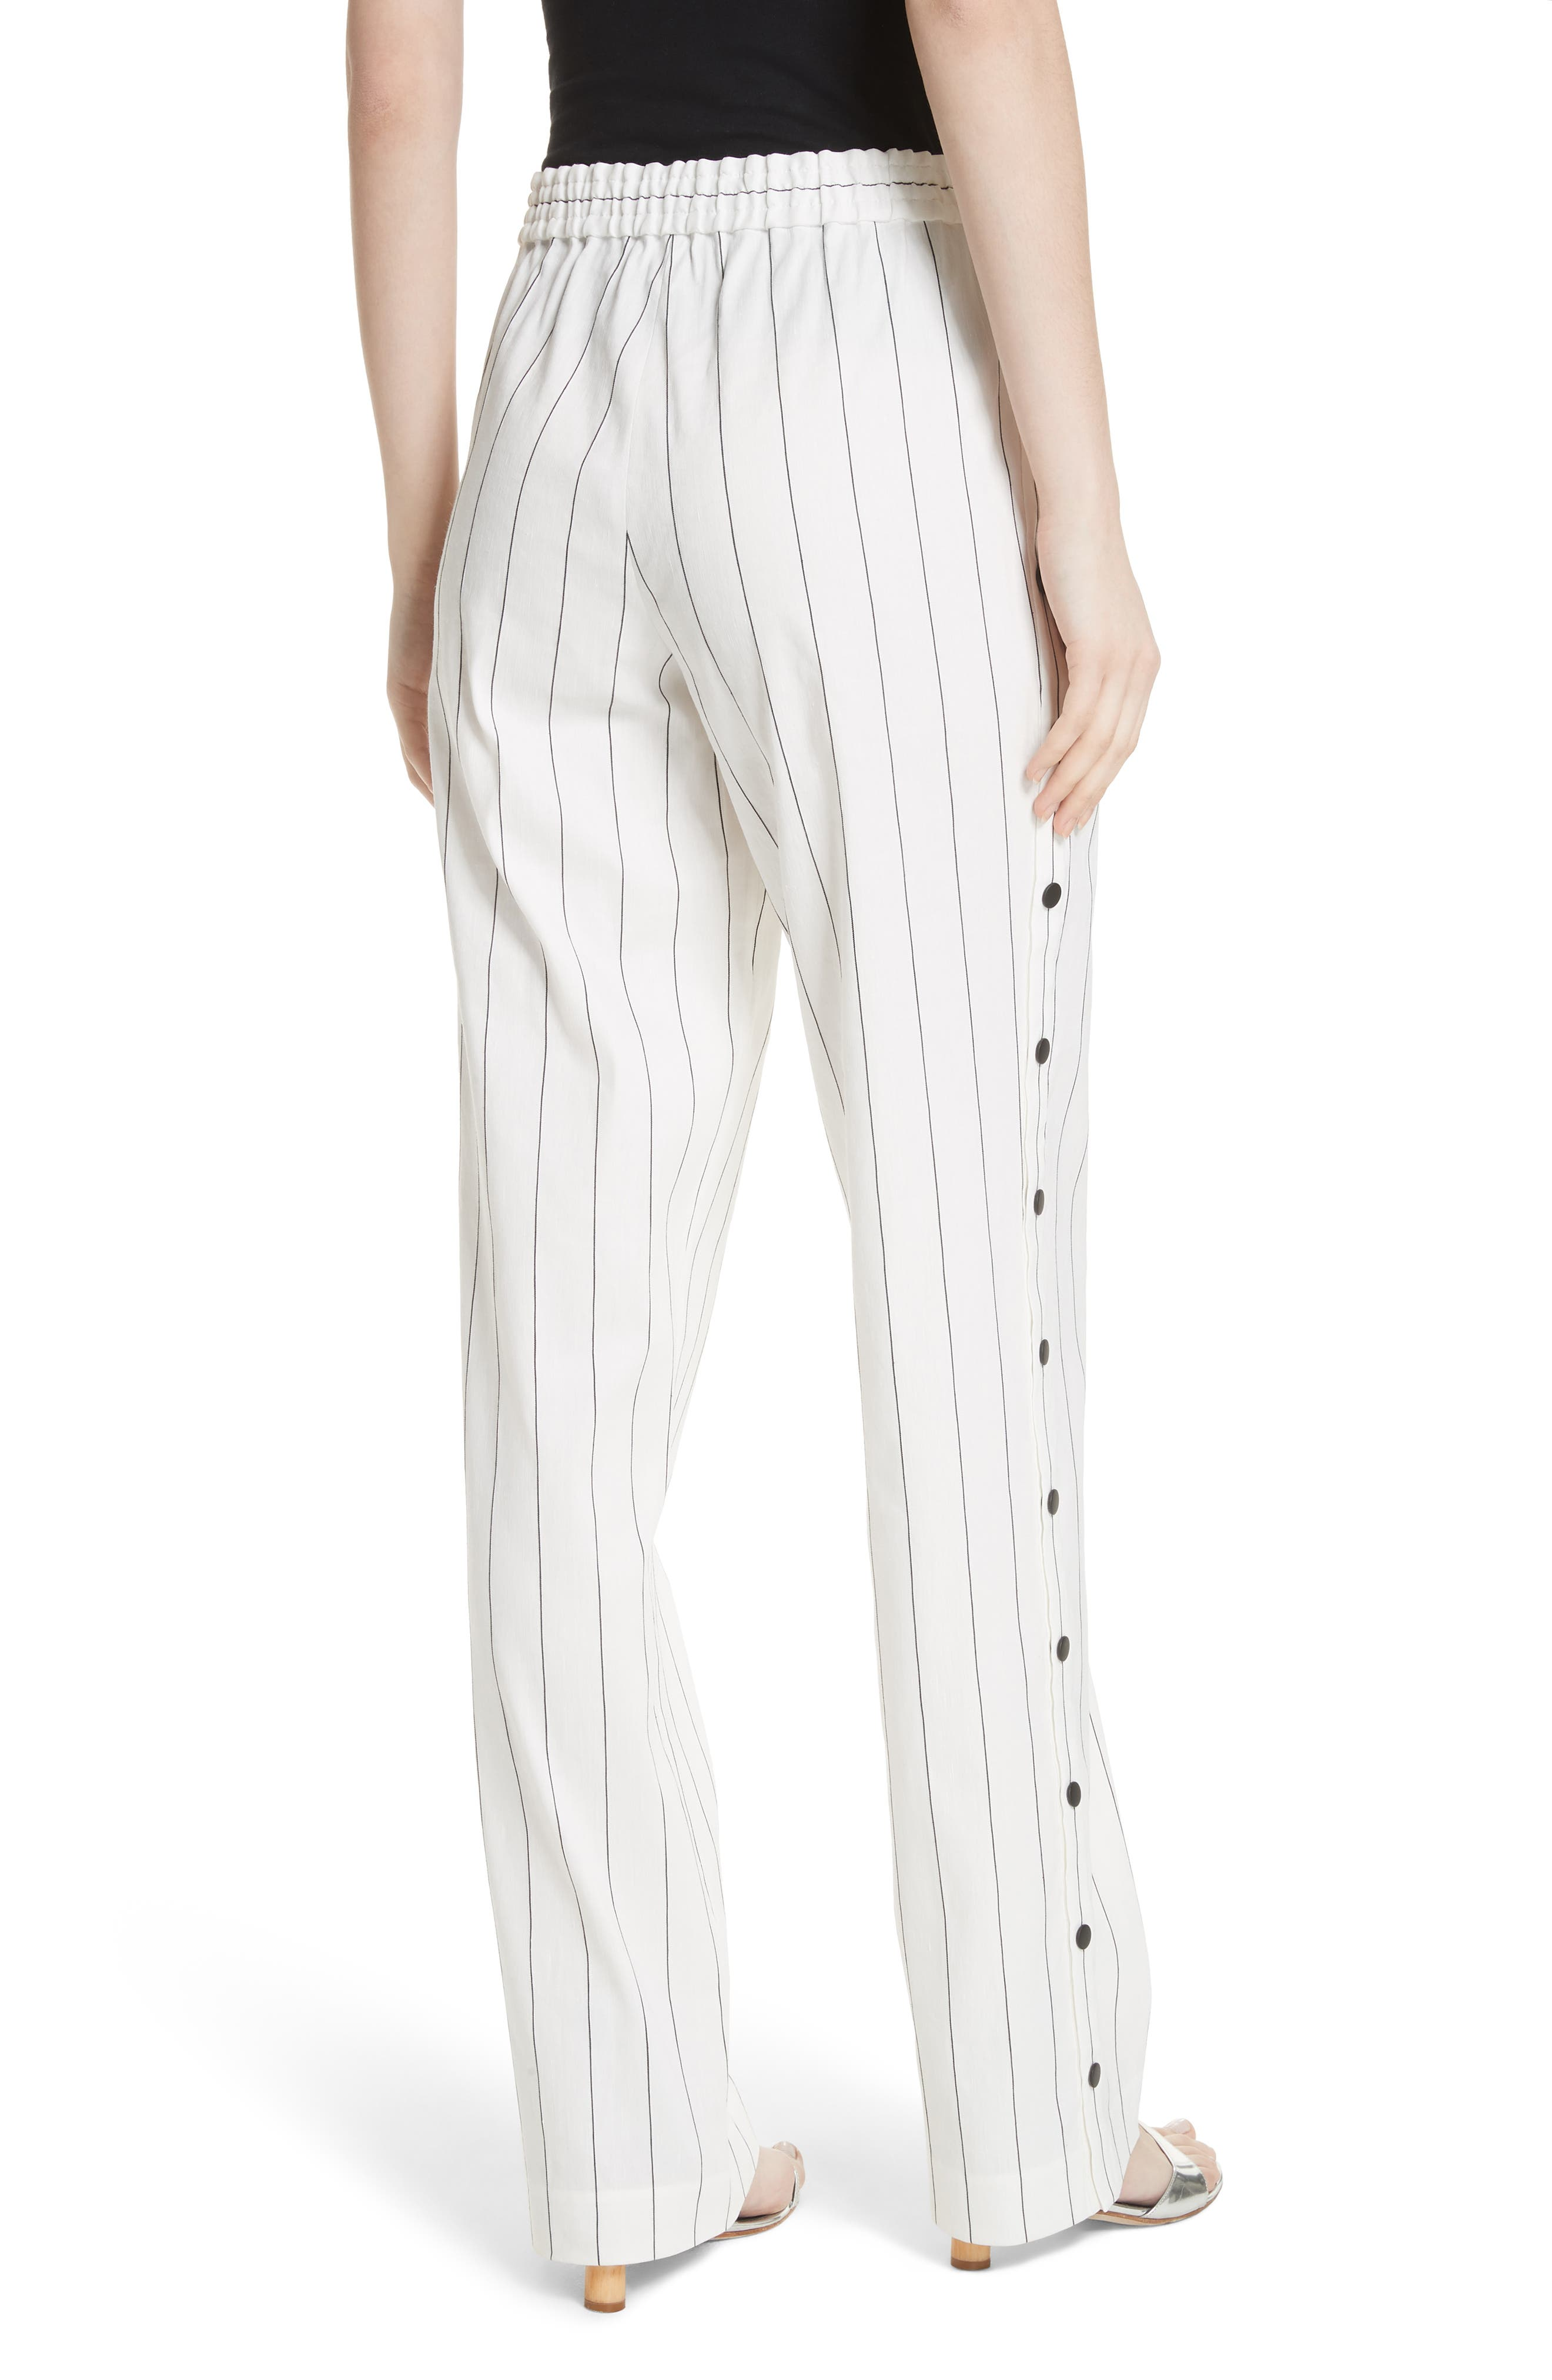 Snap Side Stripe Pants,                             Alternate thumbnail 2, color,                             907